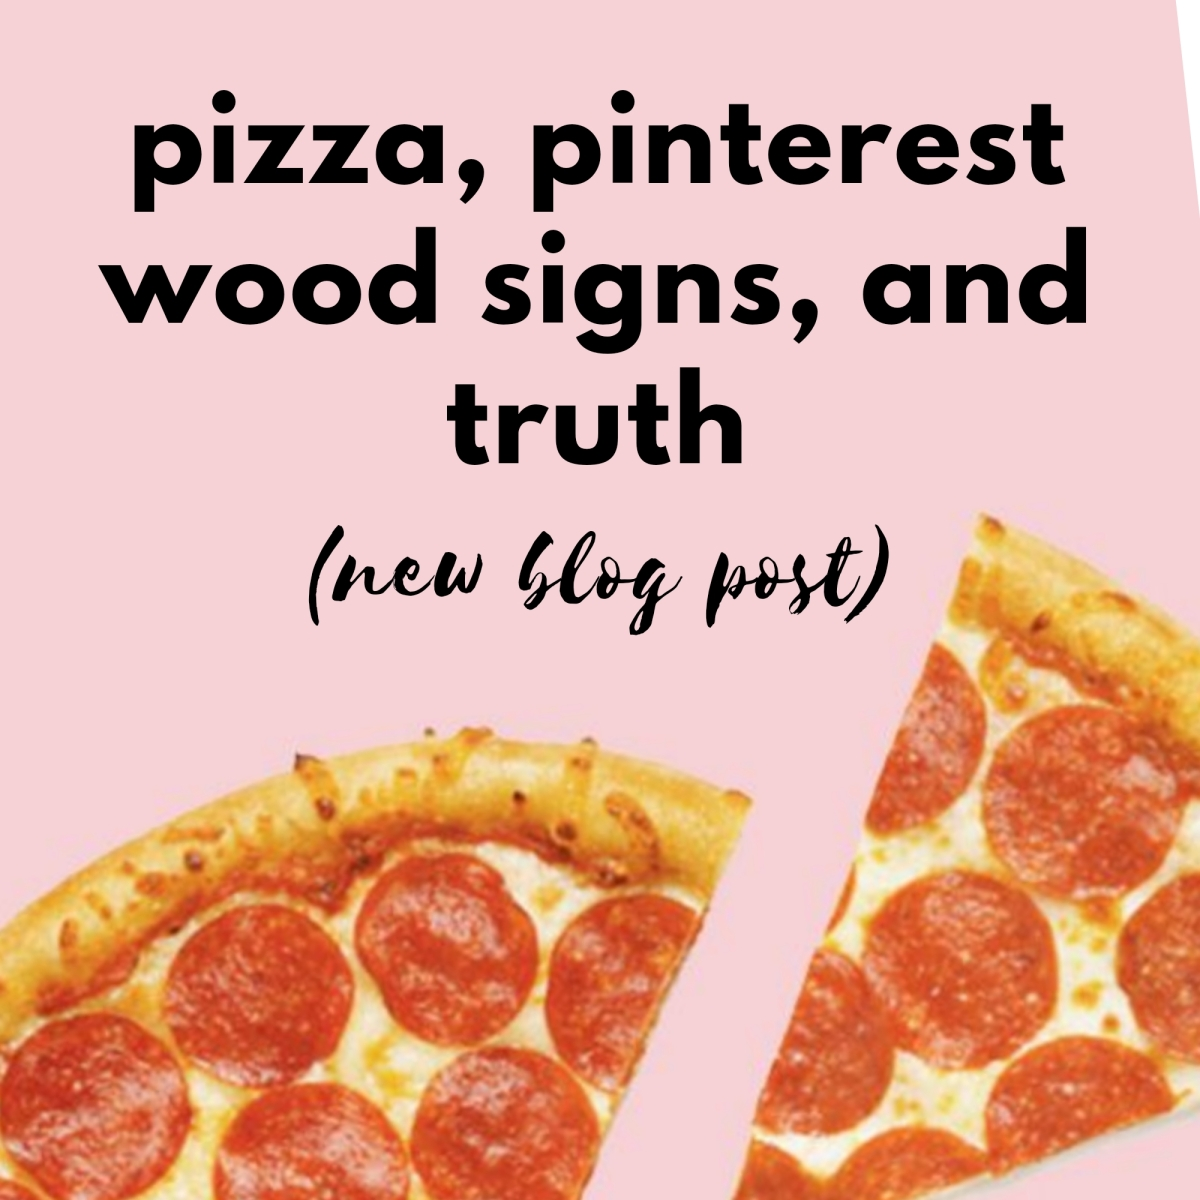 Pizza, Pinterest, Wood Signs, and Truth